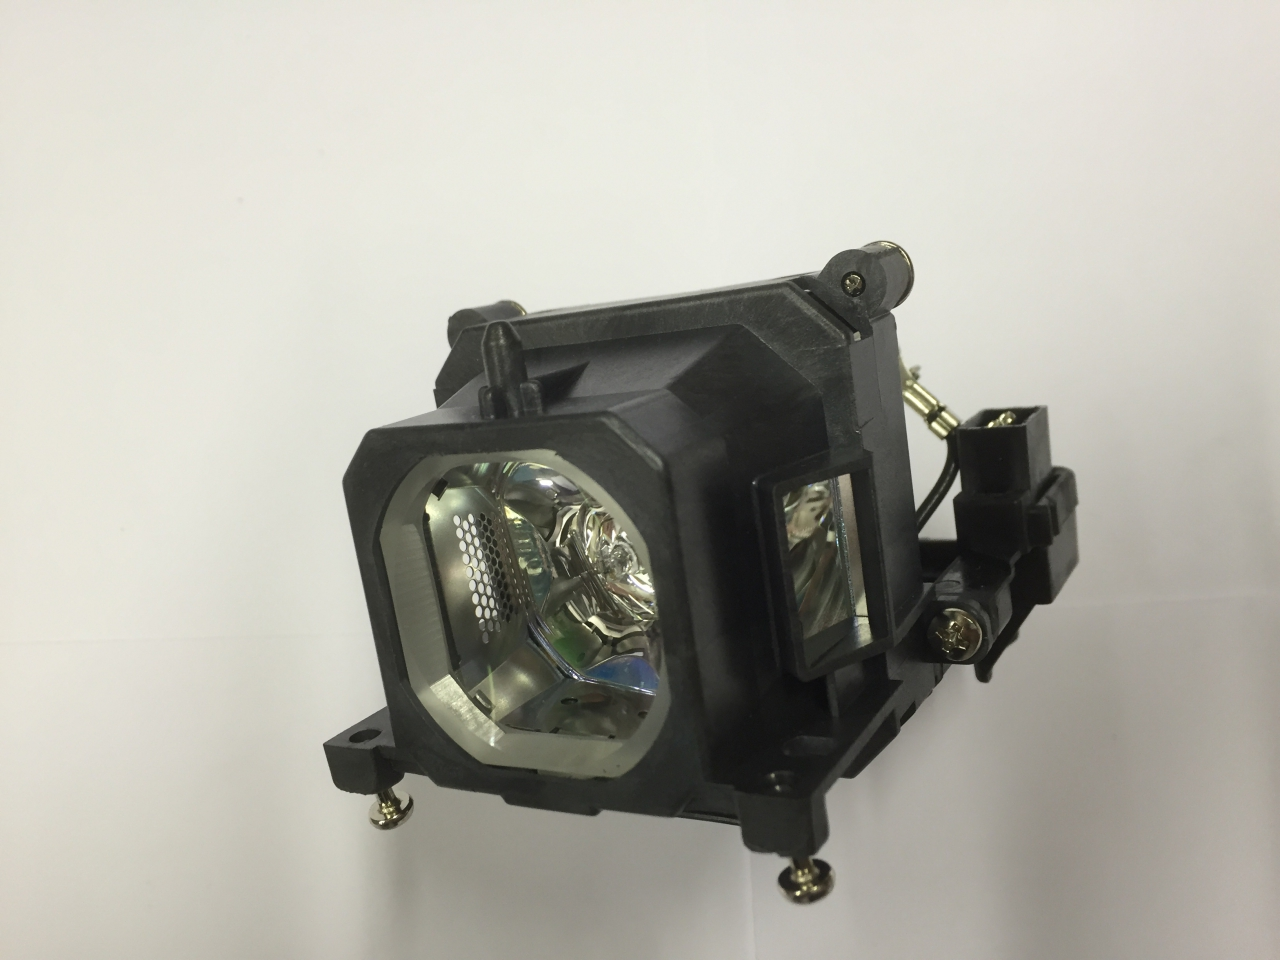 ACTO ACTO LX200 Genuine Original Projector Lamp